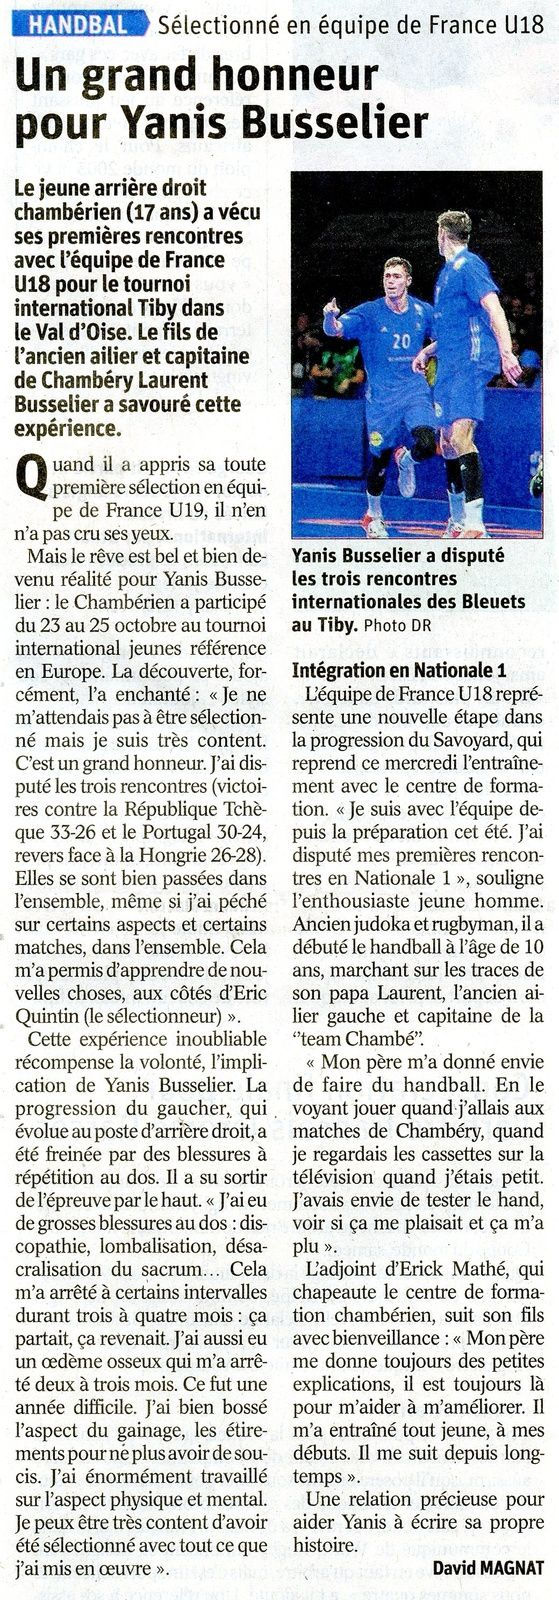 Yanis BUSSELIER en EDF U18 l'article du DL par David MAGNAT mercredi 30 octobre 2019